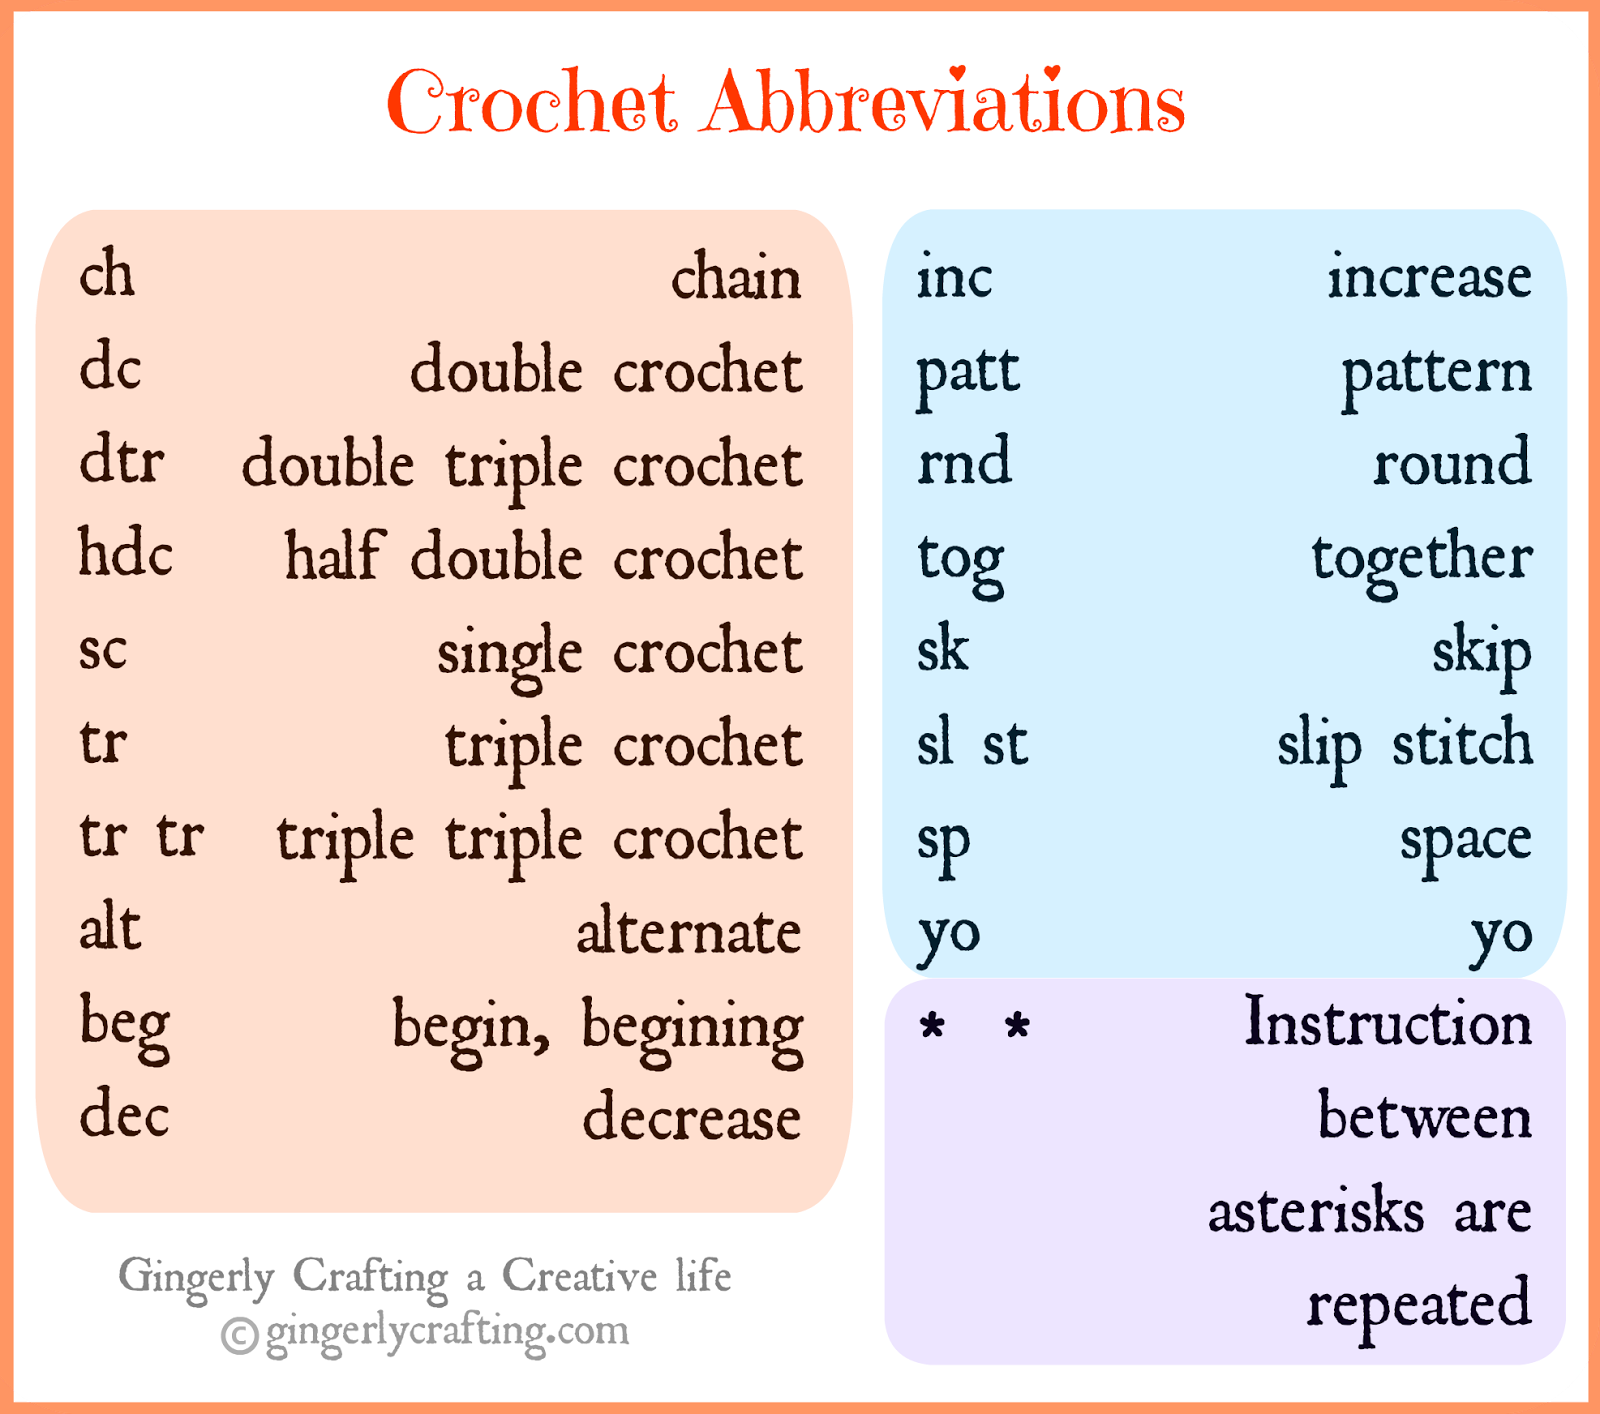 Crochet Stitches And Abbreviations : click on the image, save and print for you personal use.